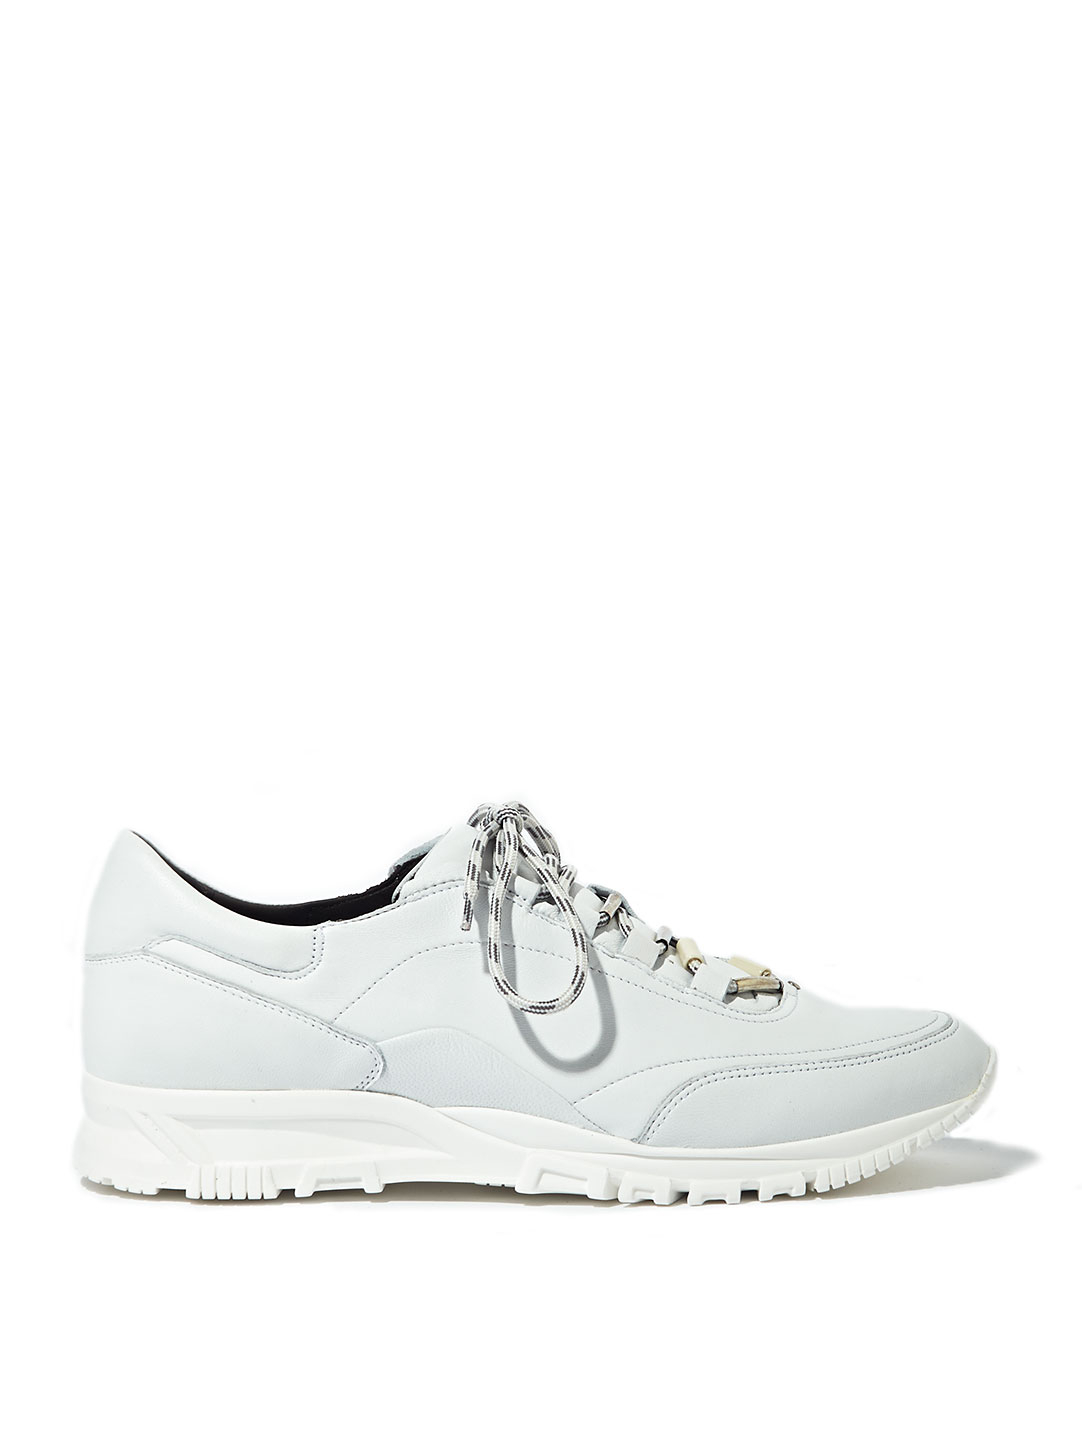 93c3a3e744a Lanvin Mens Smooth Calfskin Running Shoes in White for Men - Lyst